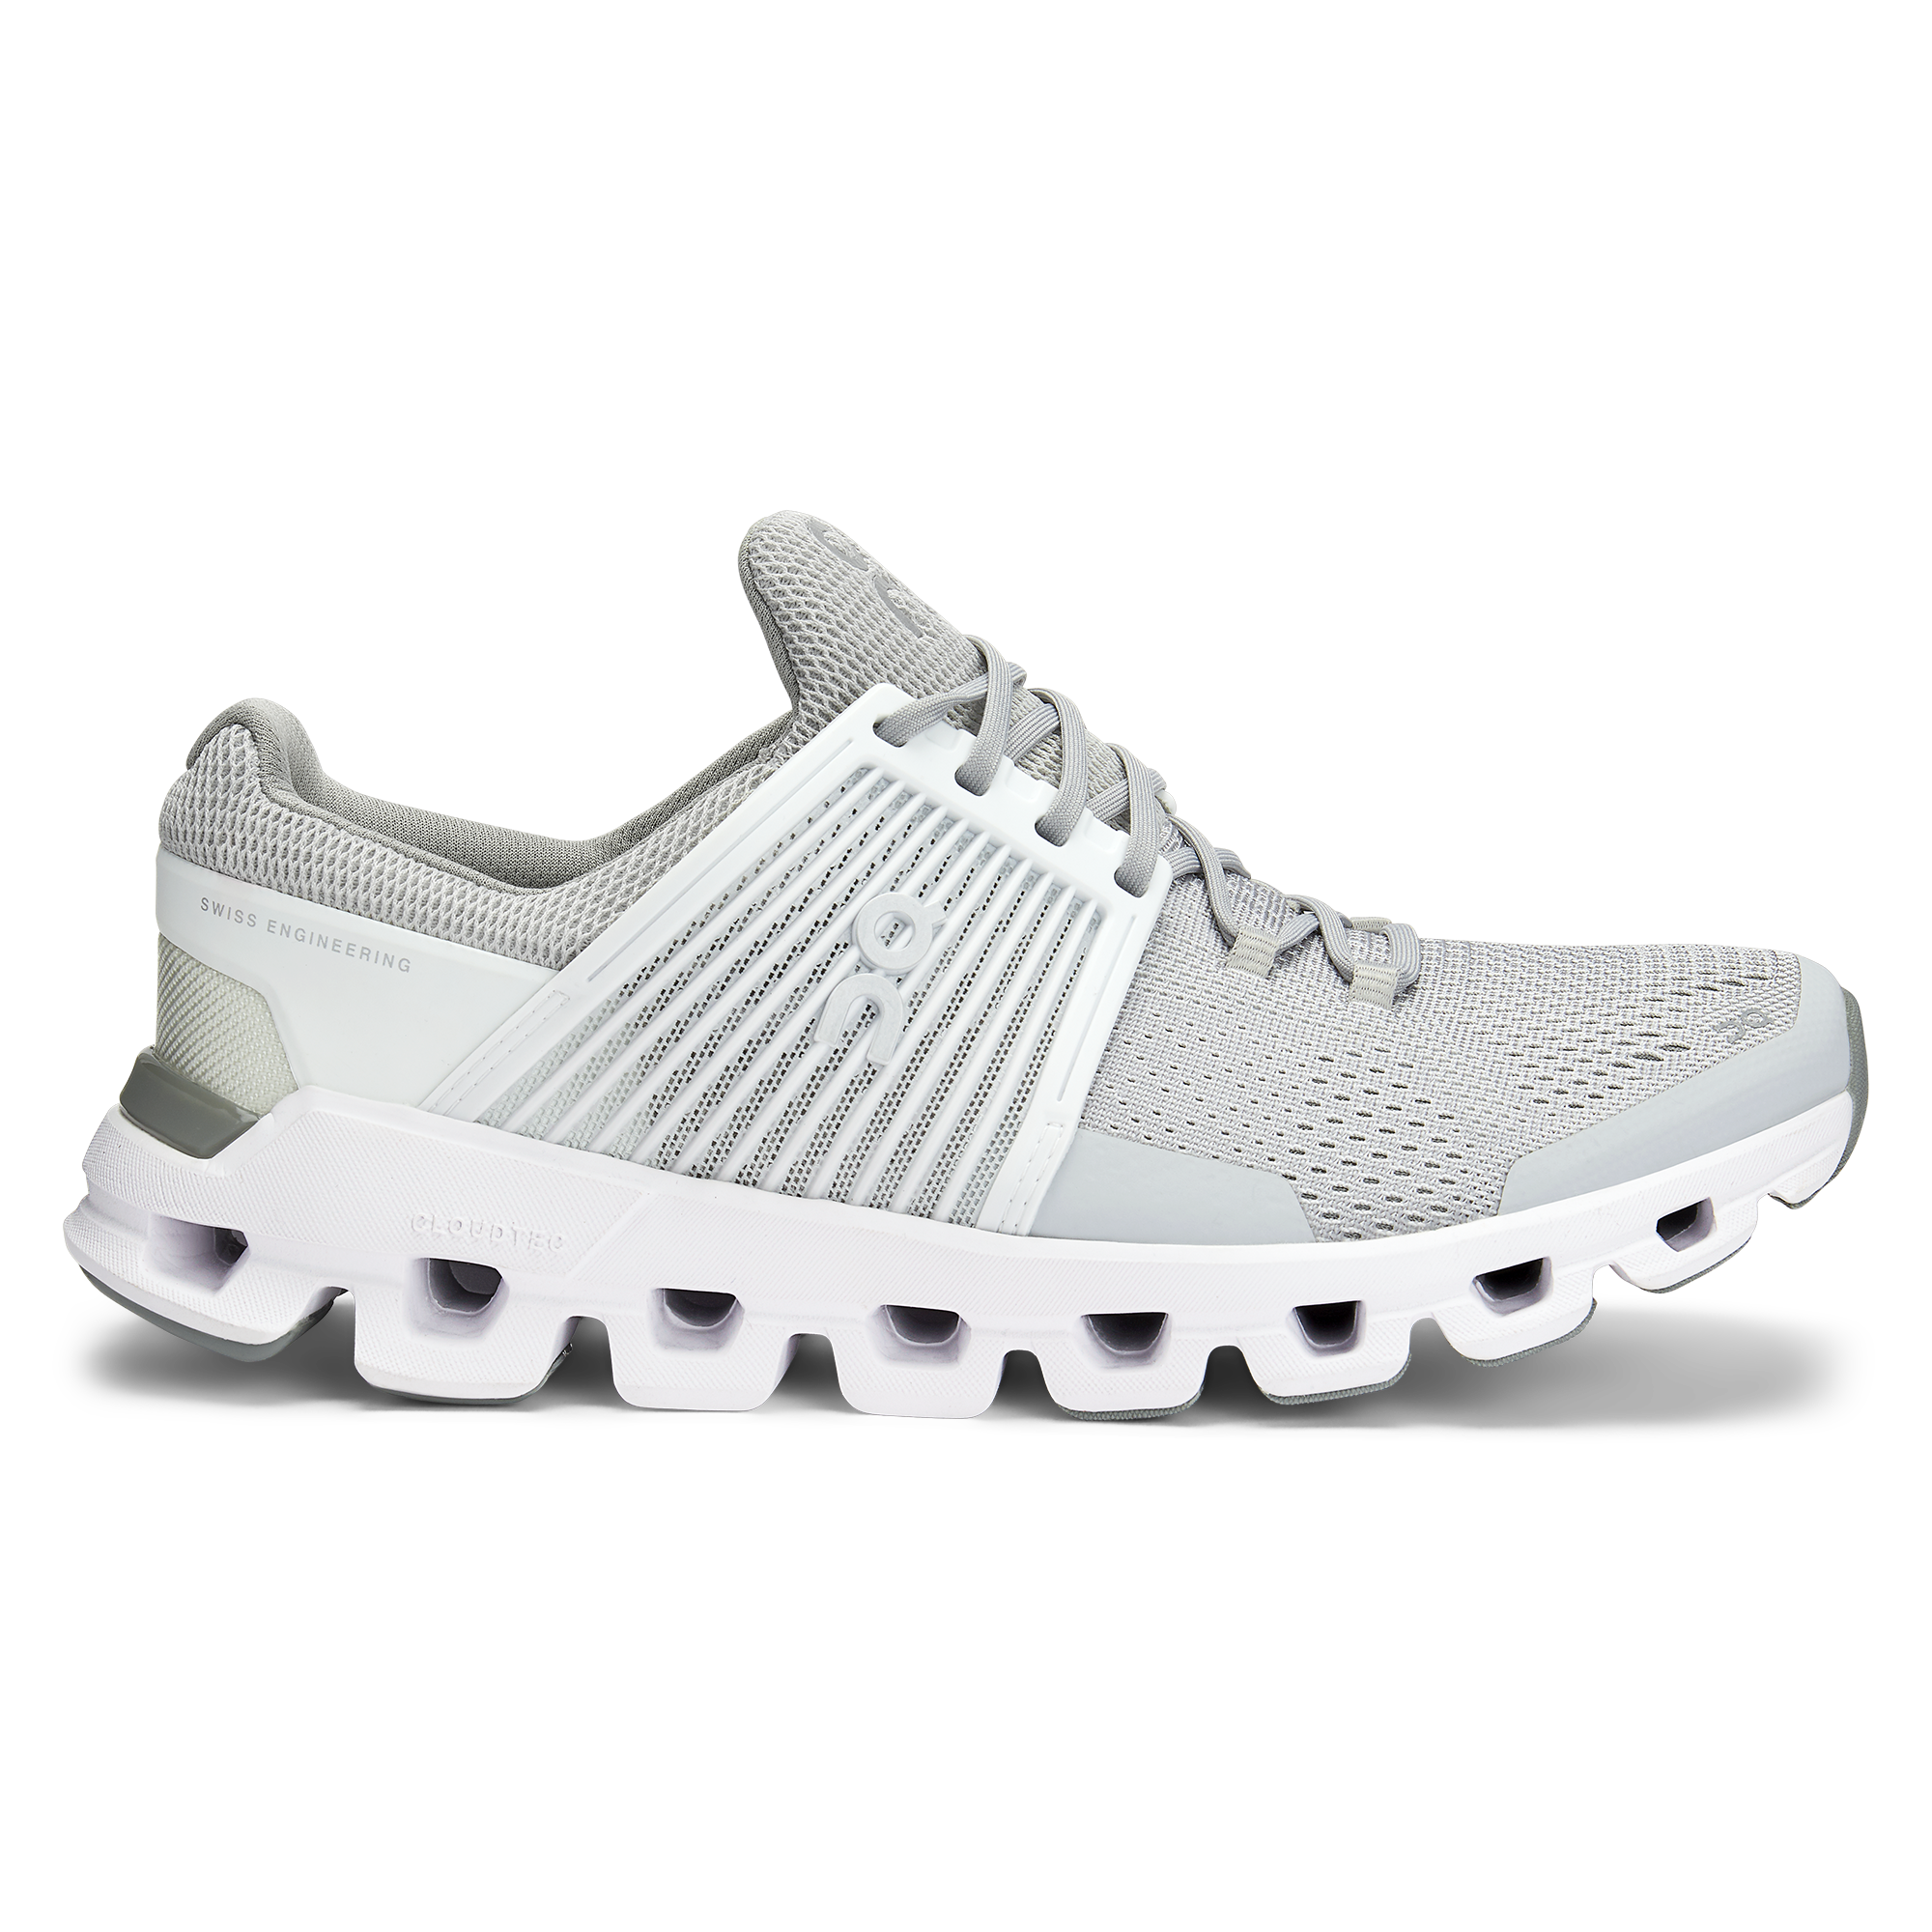 on a cloud running shoes